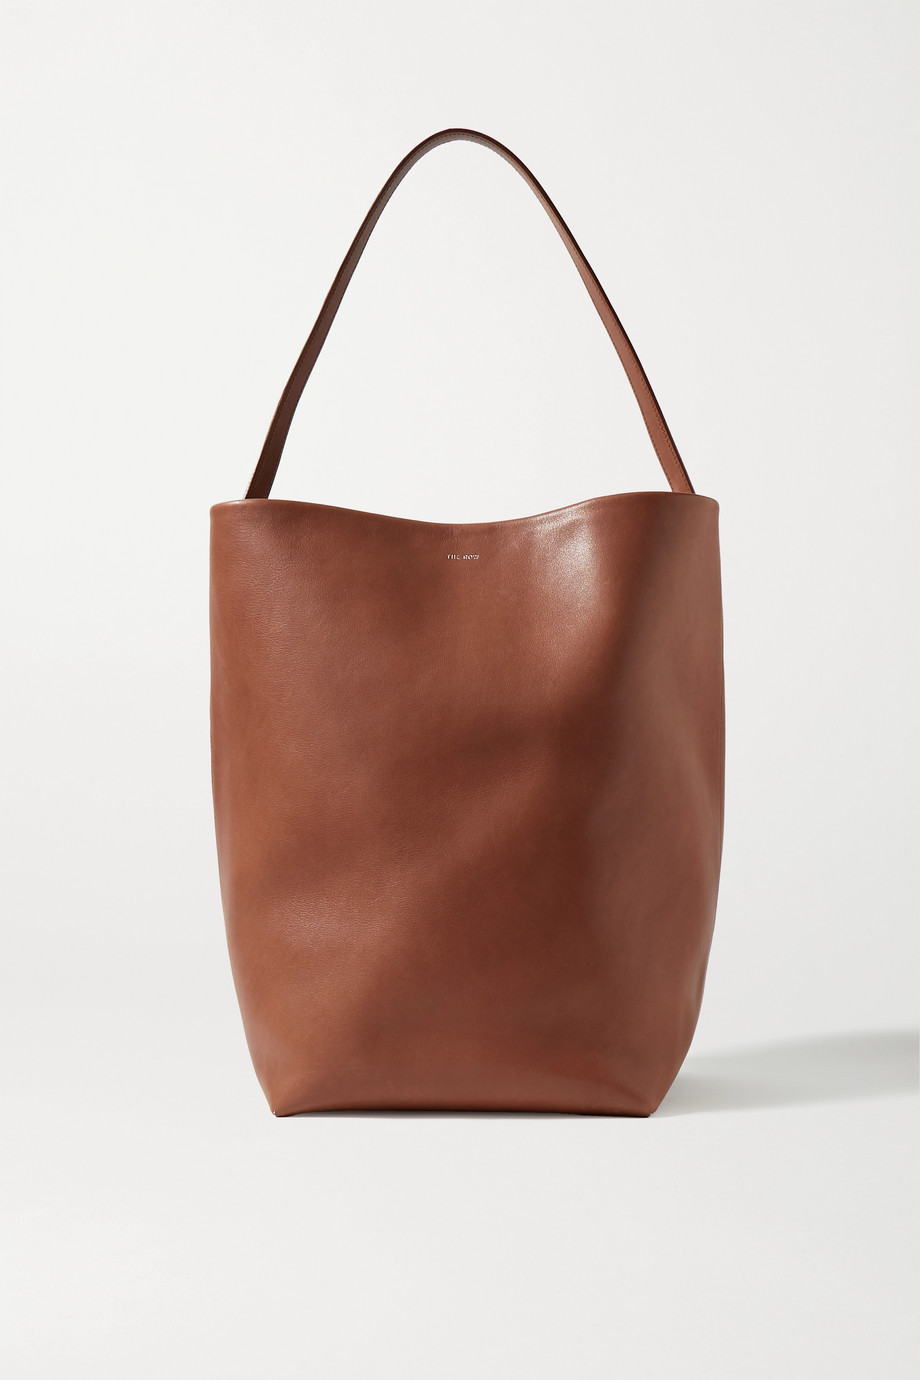 The Row N/S Park leather tote